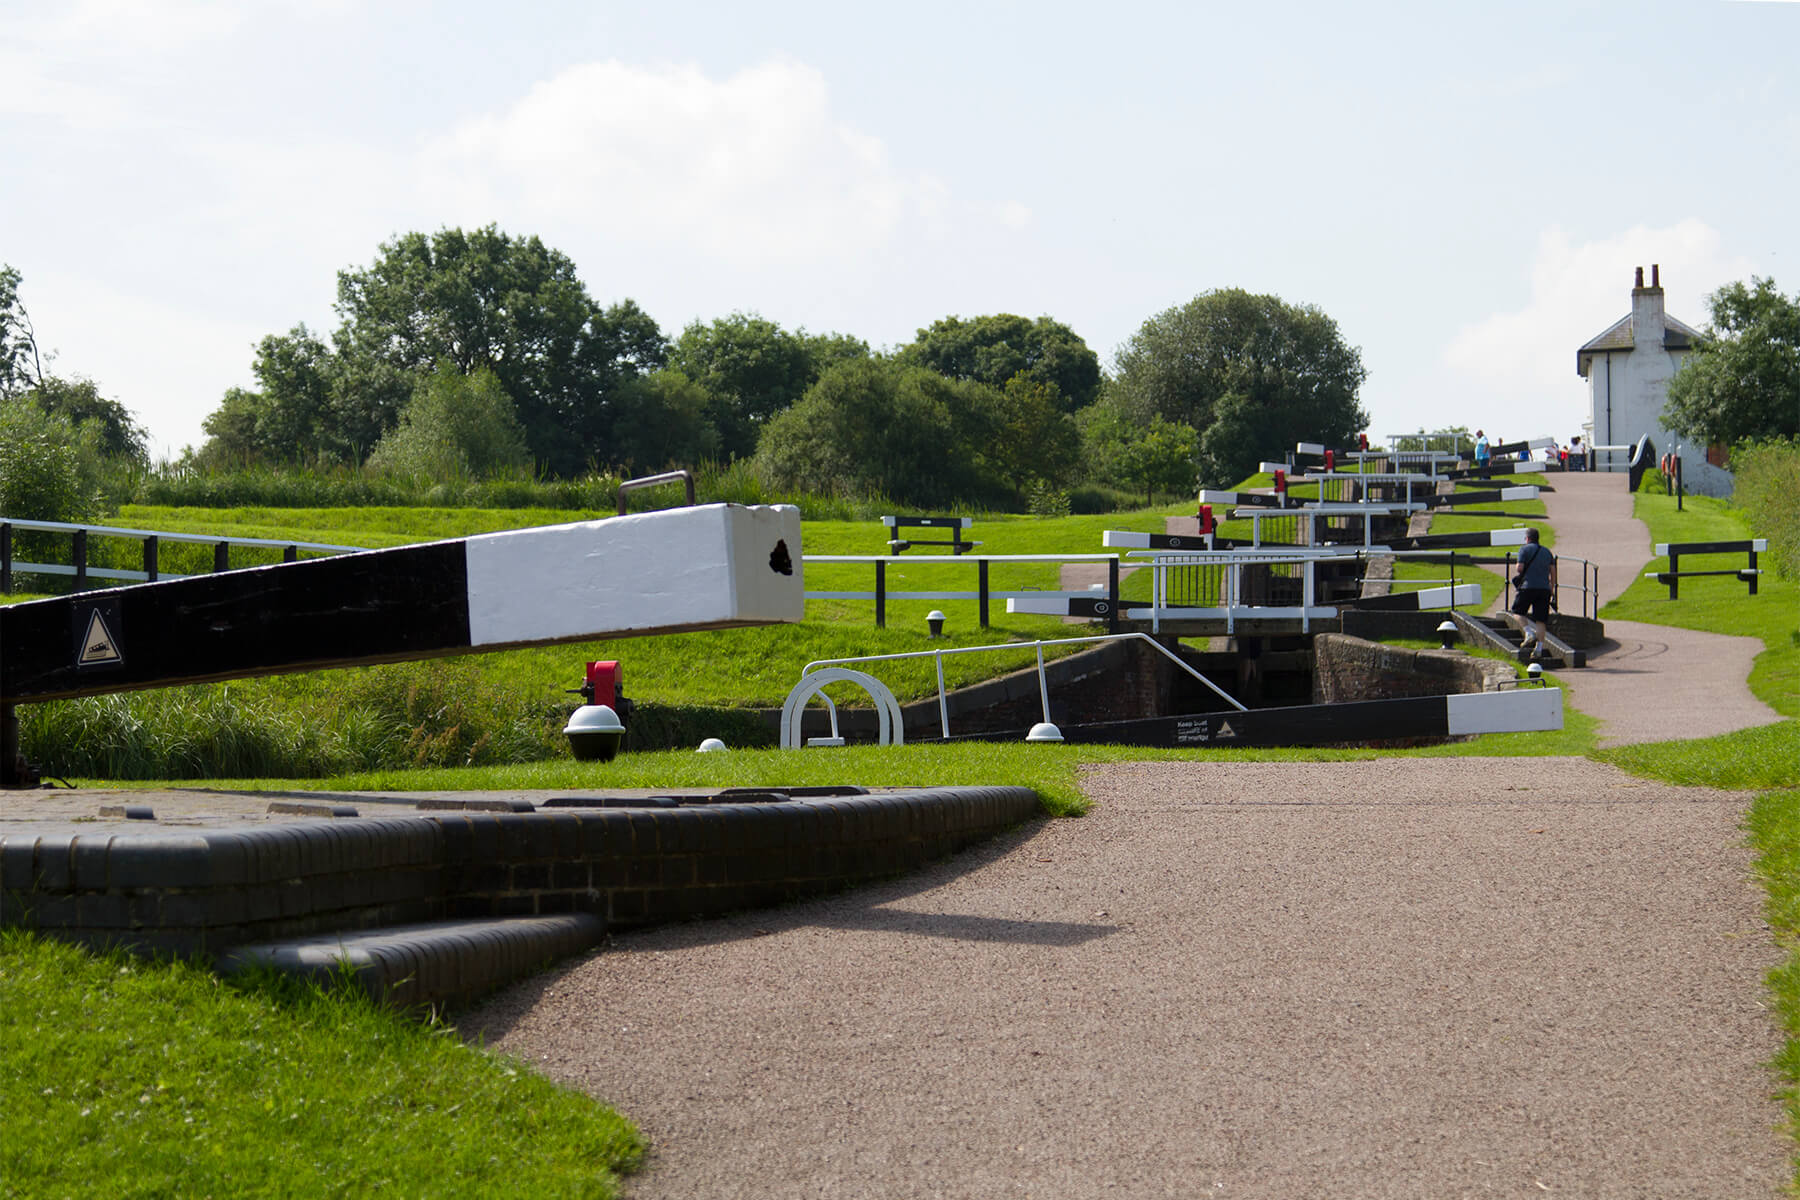 Foxton Locks in Leicestershire